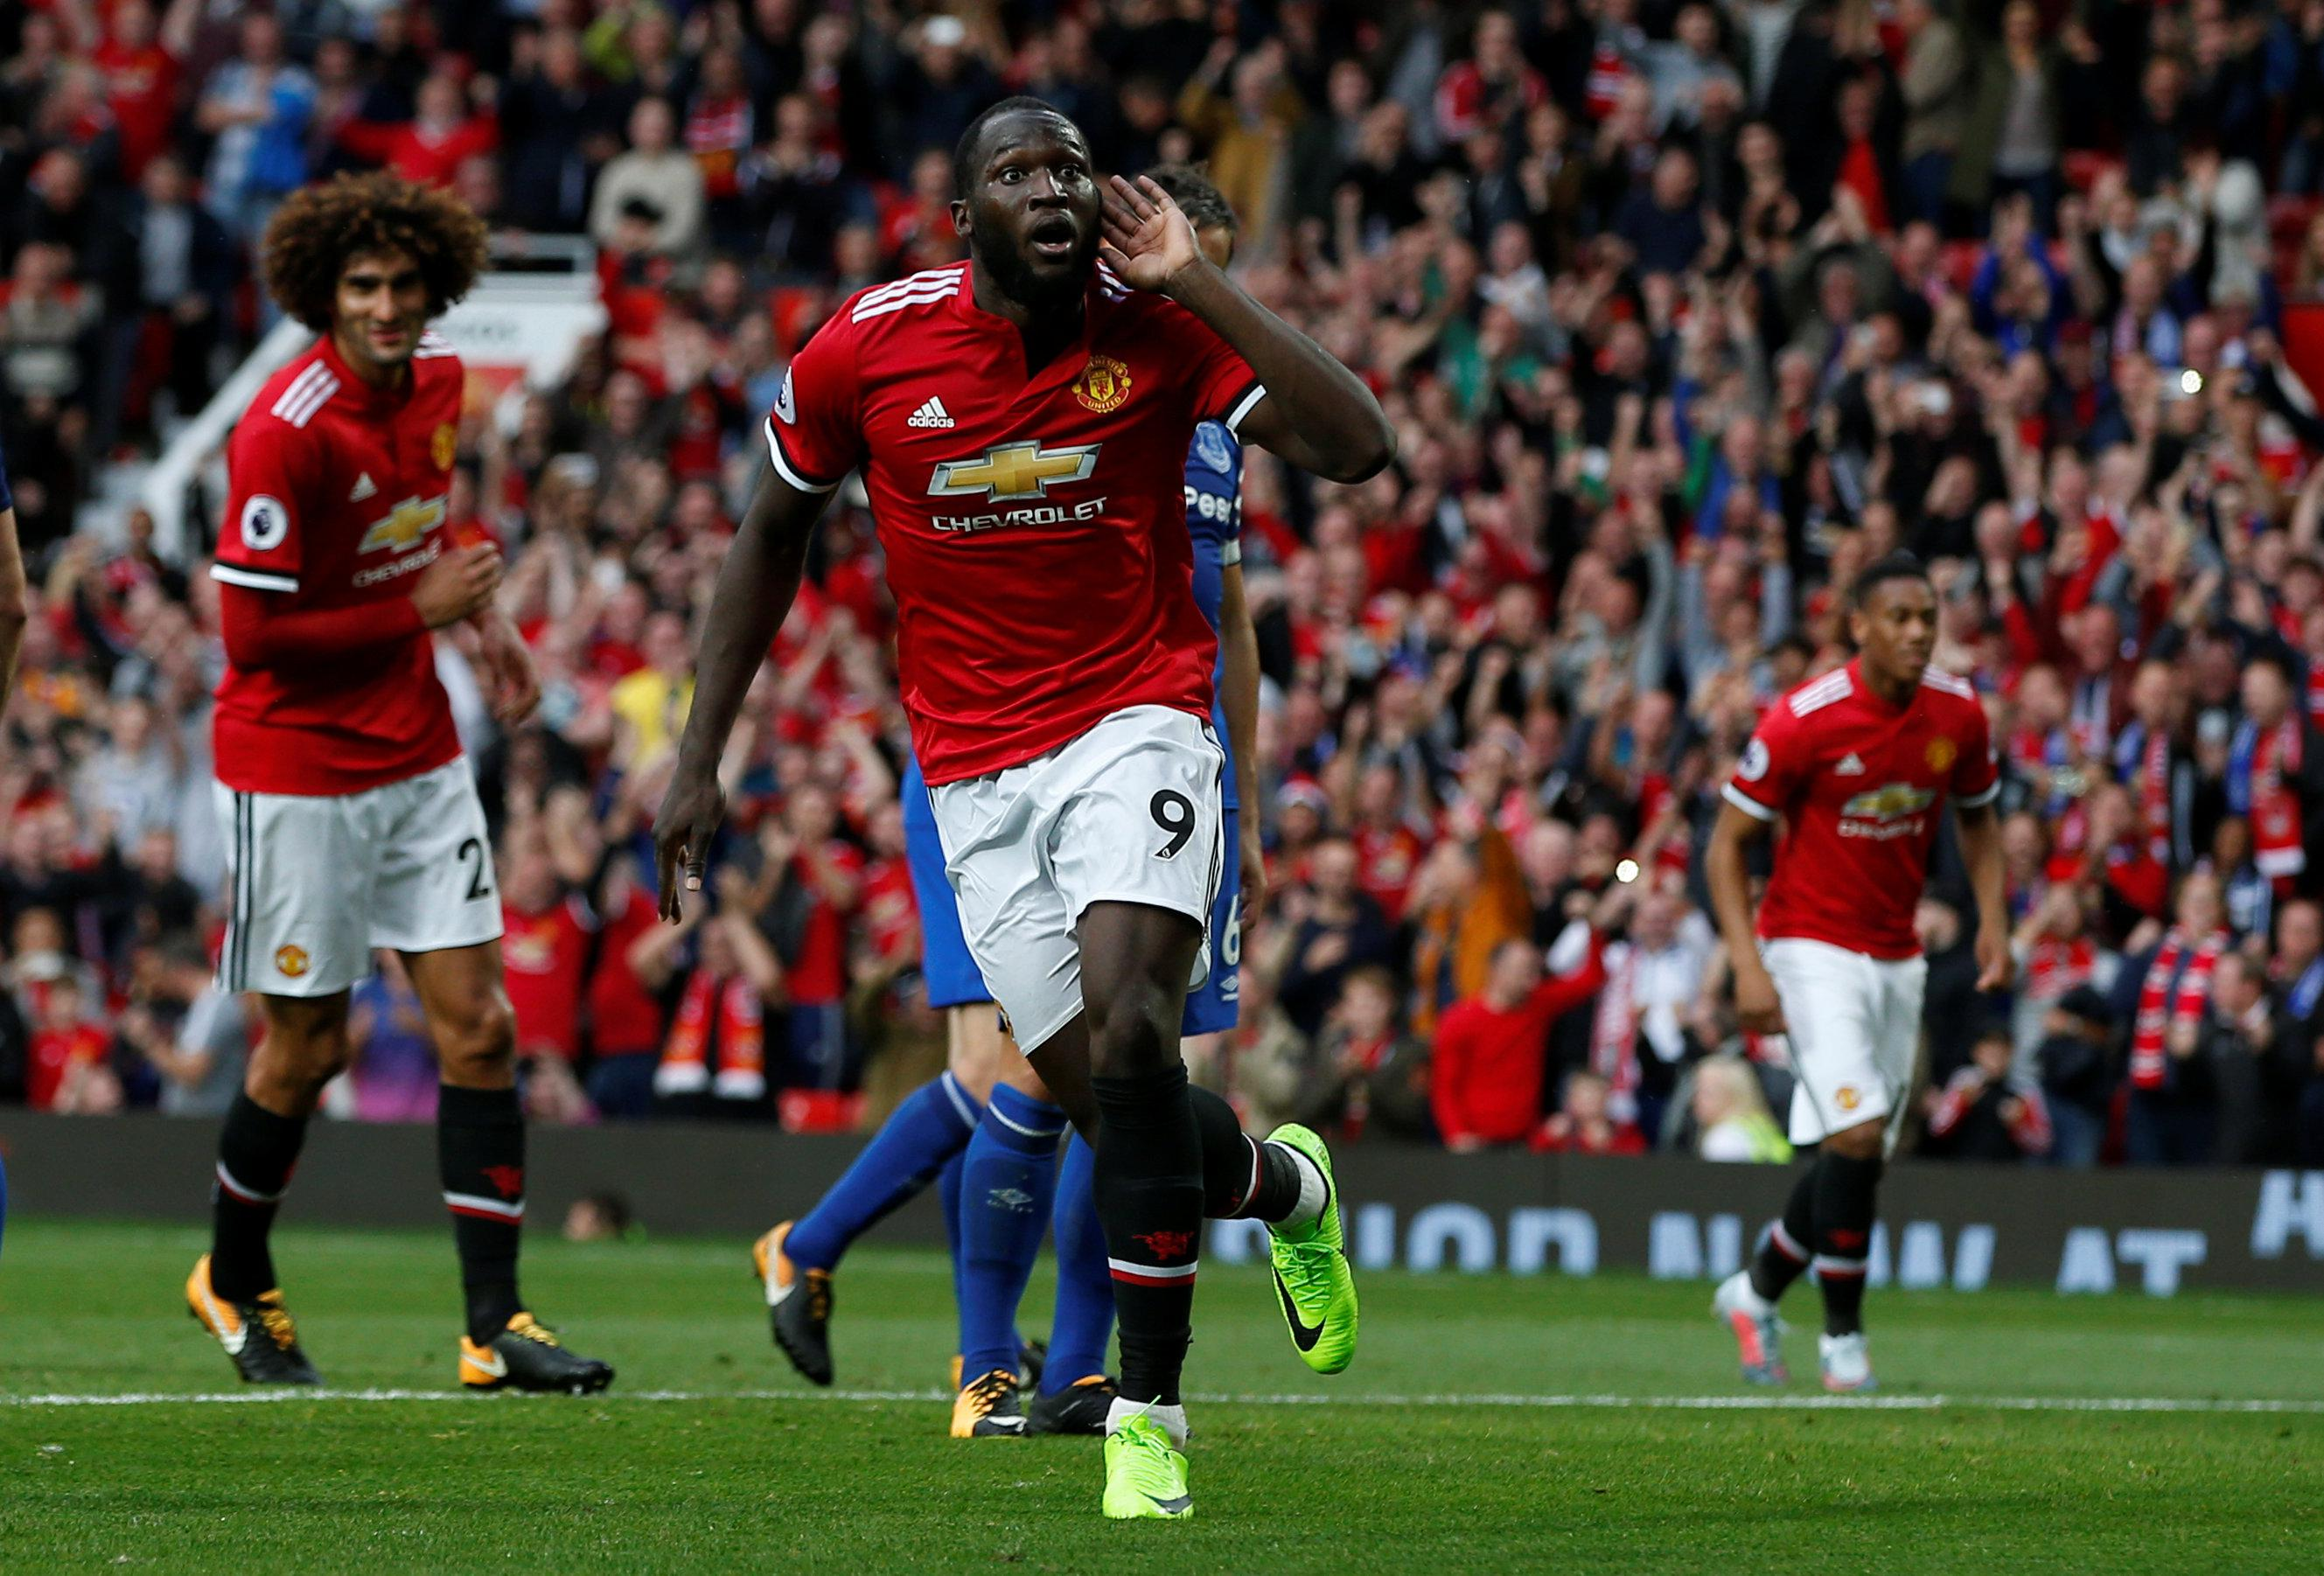 Lukaku cashed in as Everton tired at Old Trafford